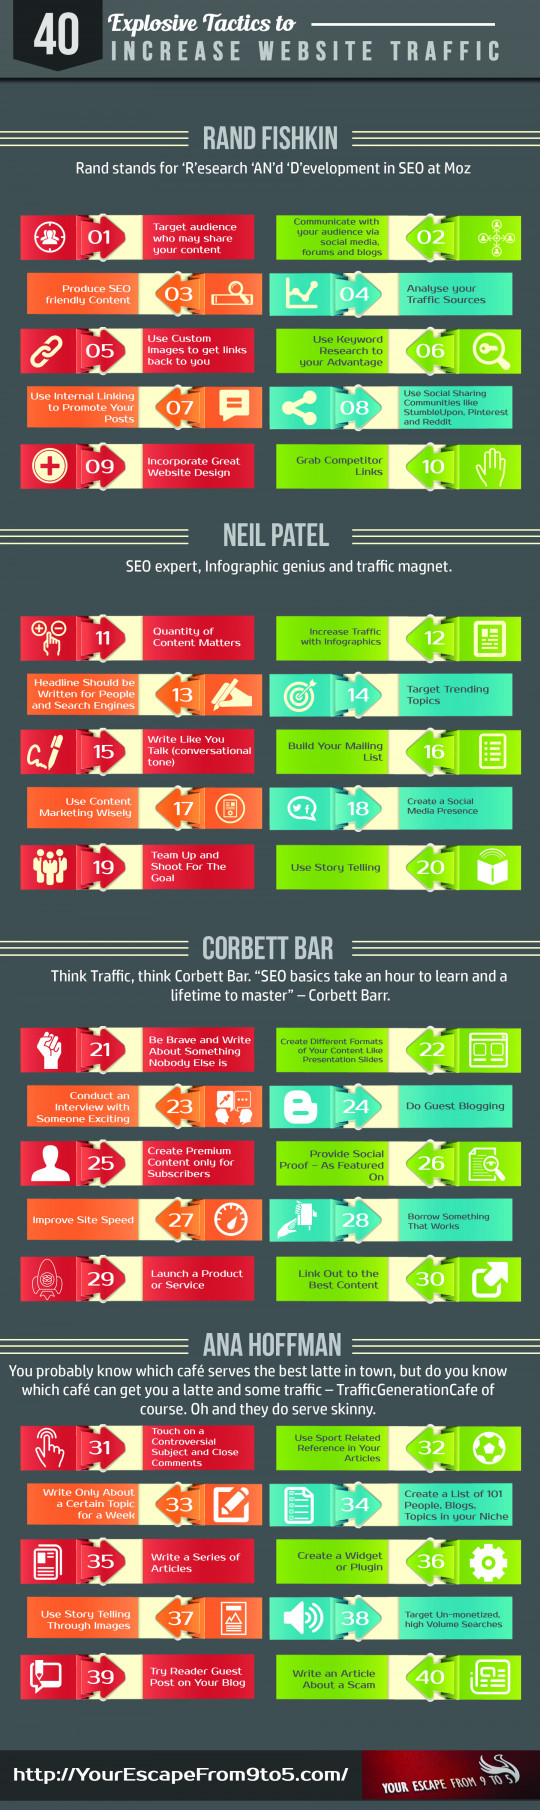 40 Explosive Tactics to Increase Website Traffic – Infographic